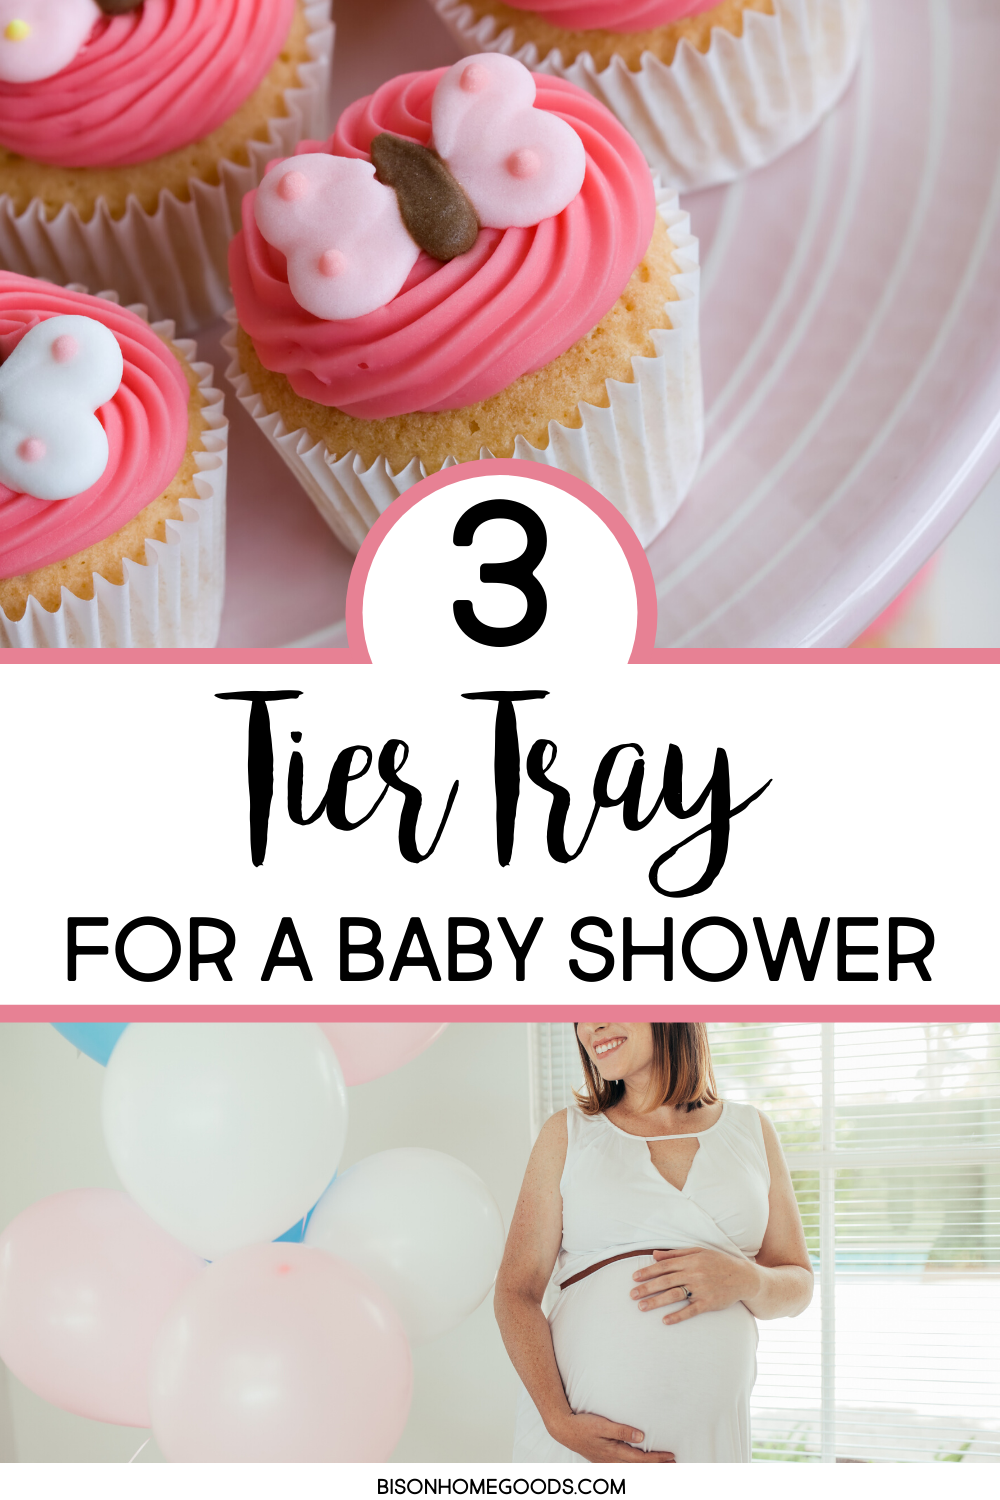 Decorating Your 3 Tier Tray for a Baby Shower